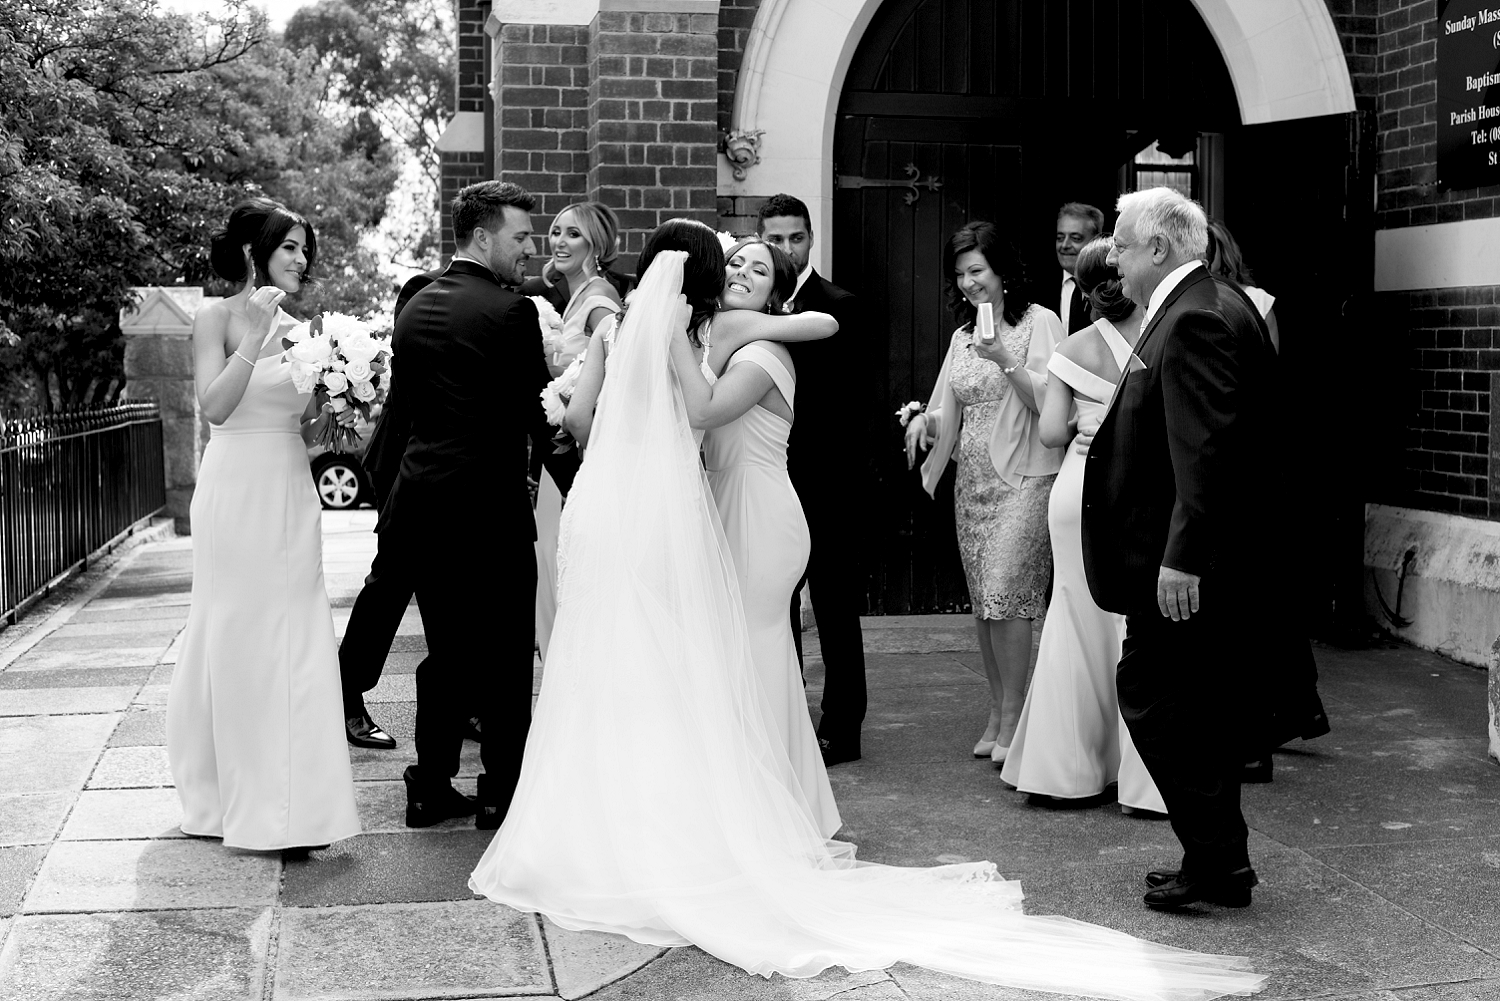 32_crown wedding perth.jpg